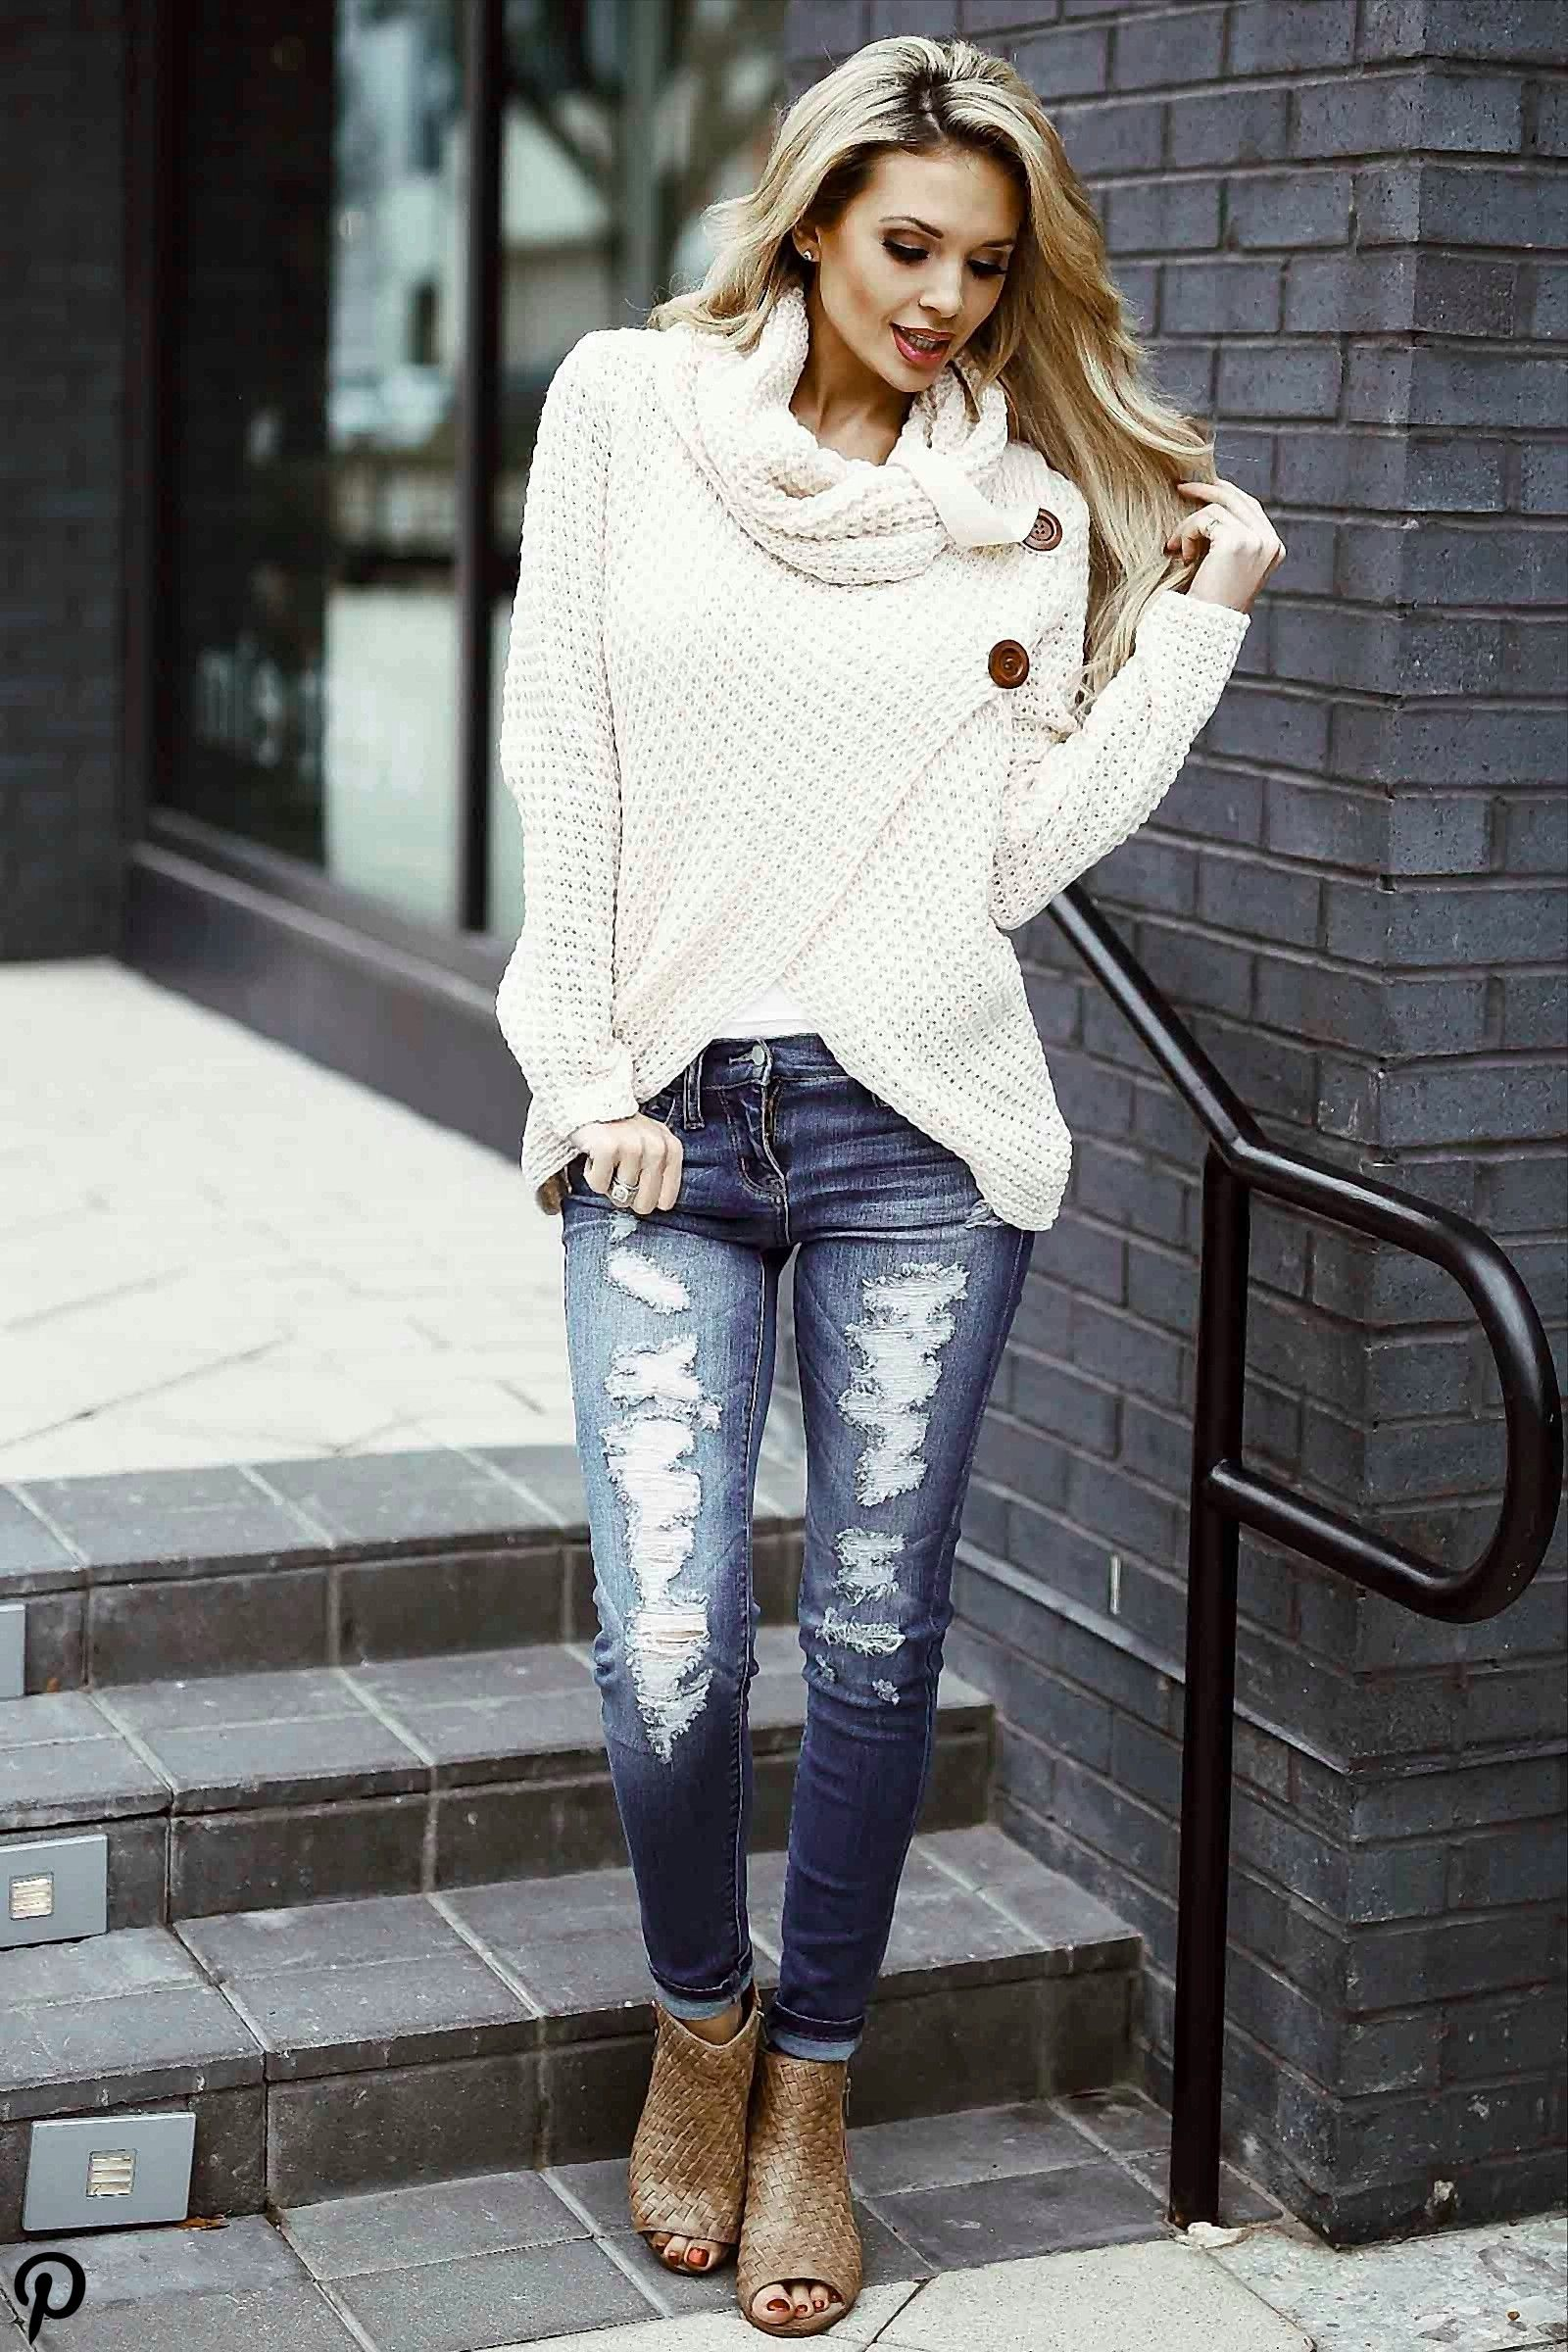 Fall Outfits 2018 60 Outfit Ideas To Inspire You For Autumn Fall Outfits 2018 60 Outfit Ideas To Inspire You For Autumn